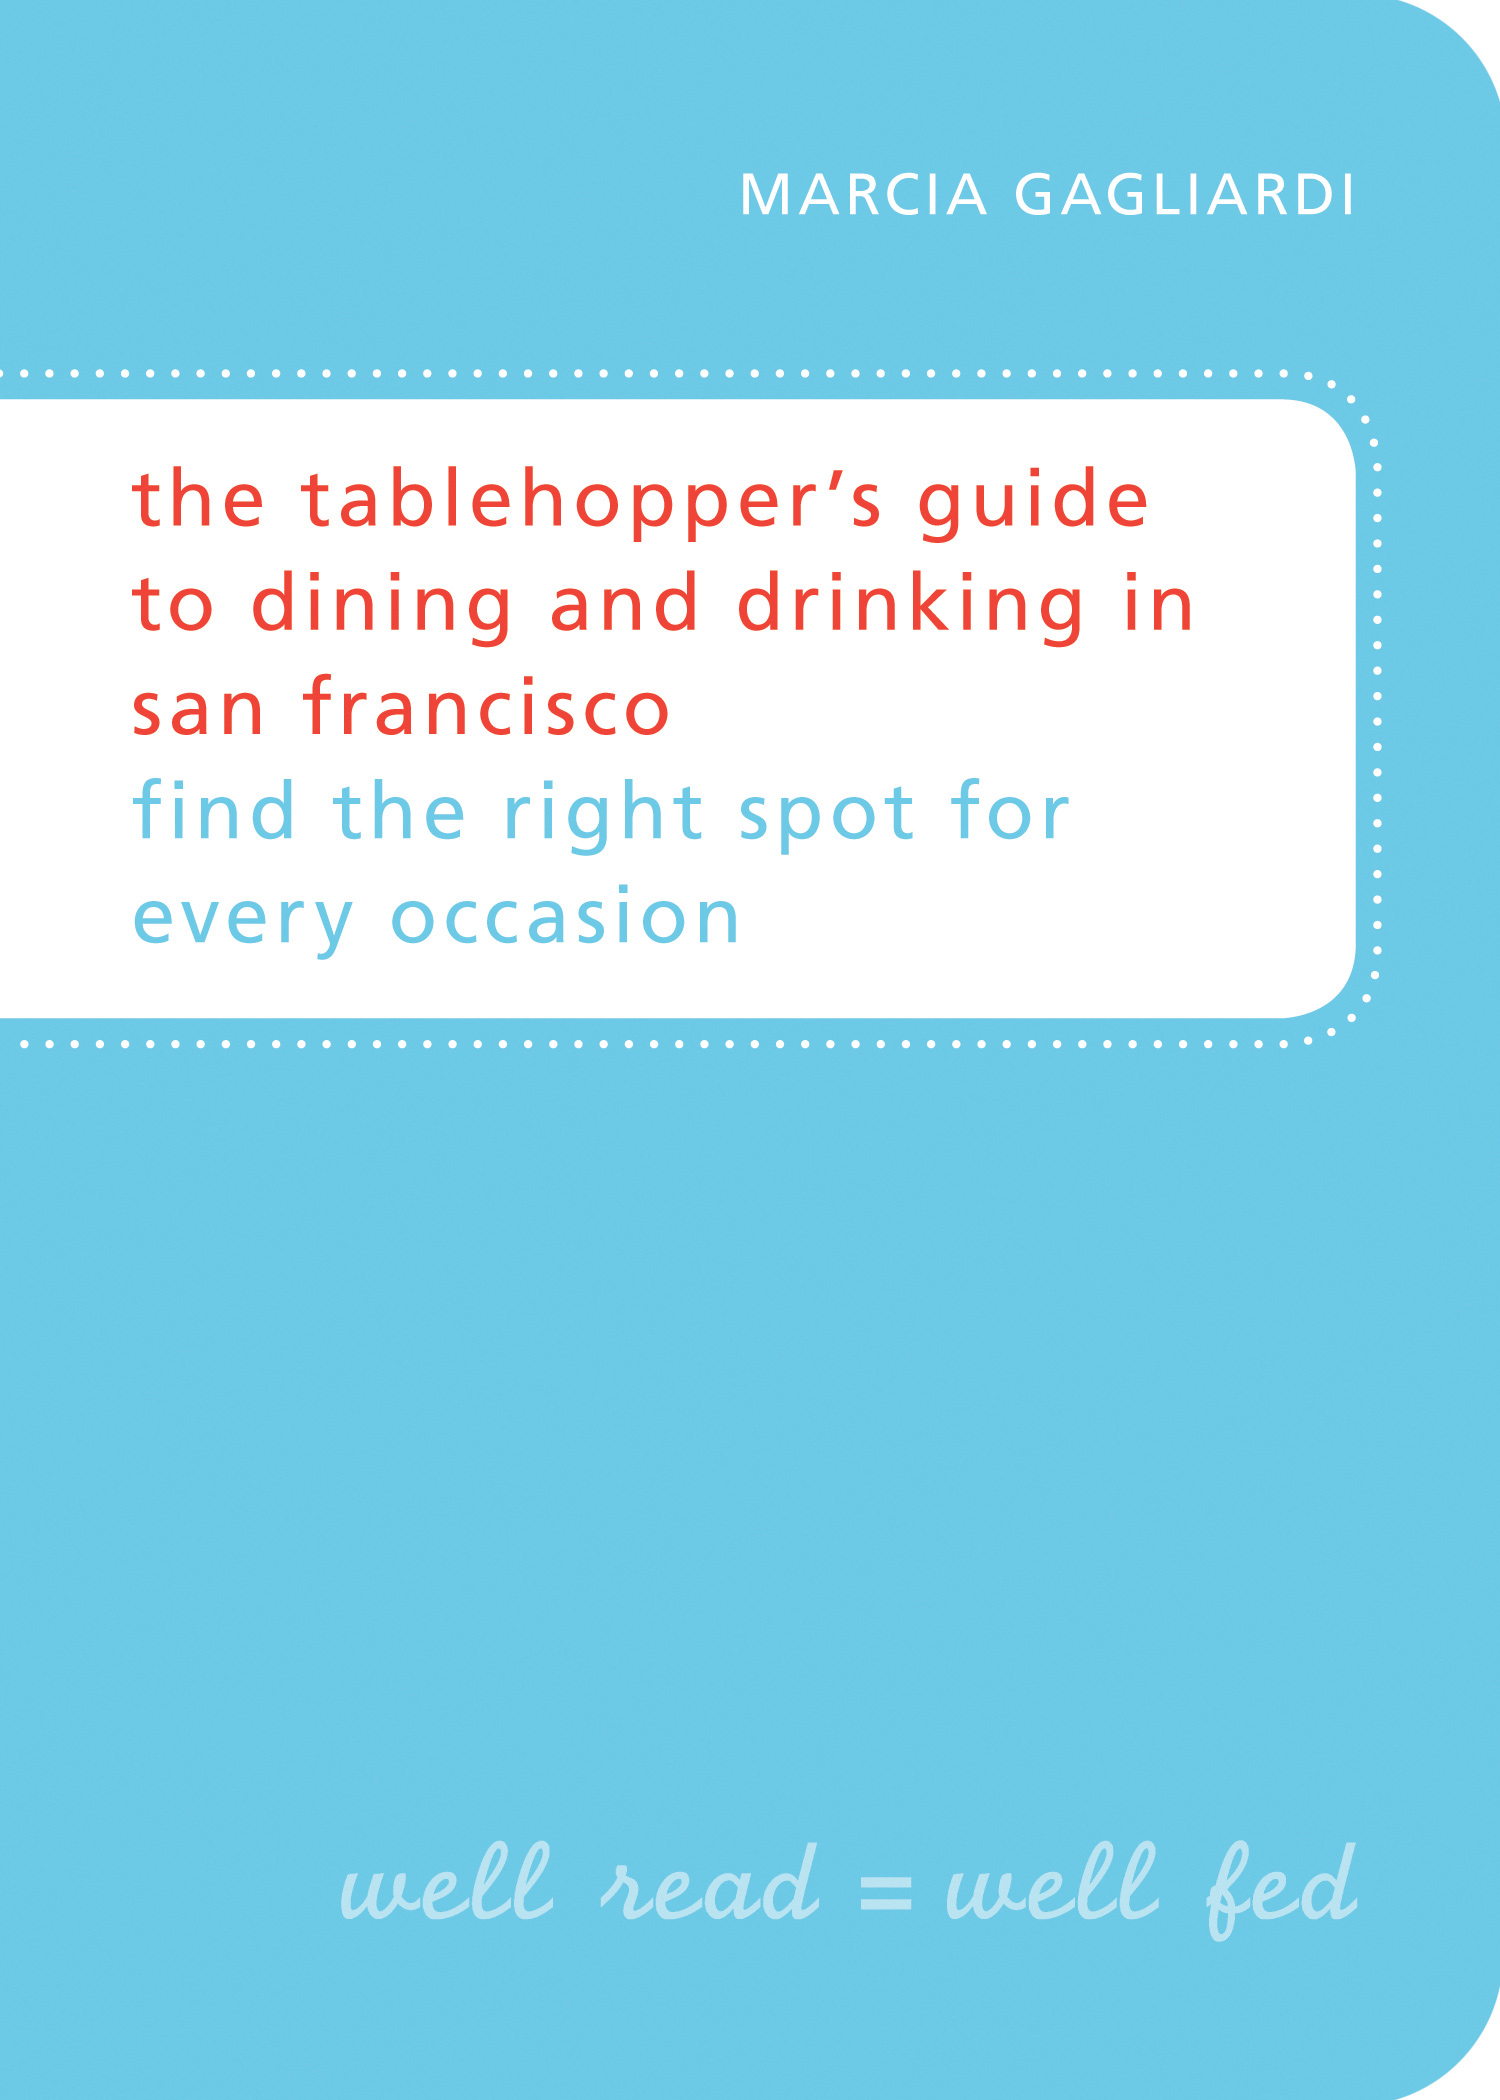 The Tablehoppers Guide to Dining and Drinking in San Francisco: Find the Right Spot for Every Occasion.